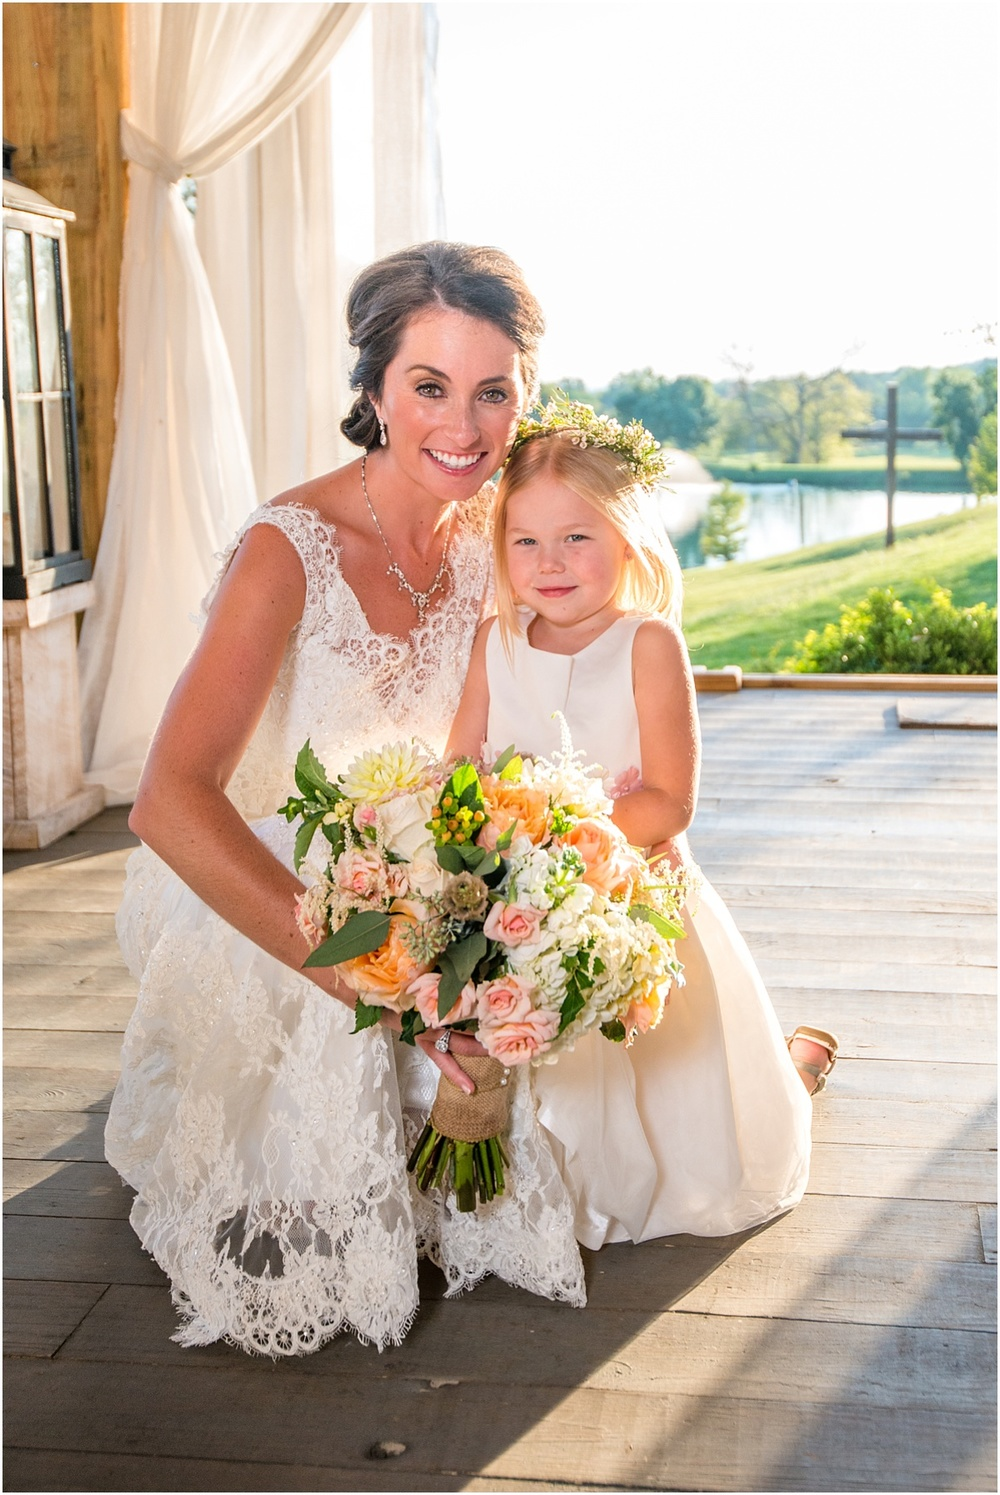 Greg Smit Photography Nashville wedding photographer Mint Springs Farm_0098